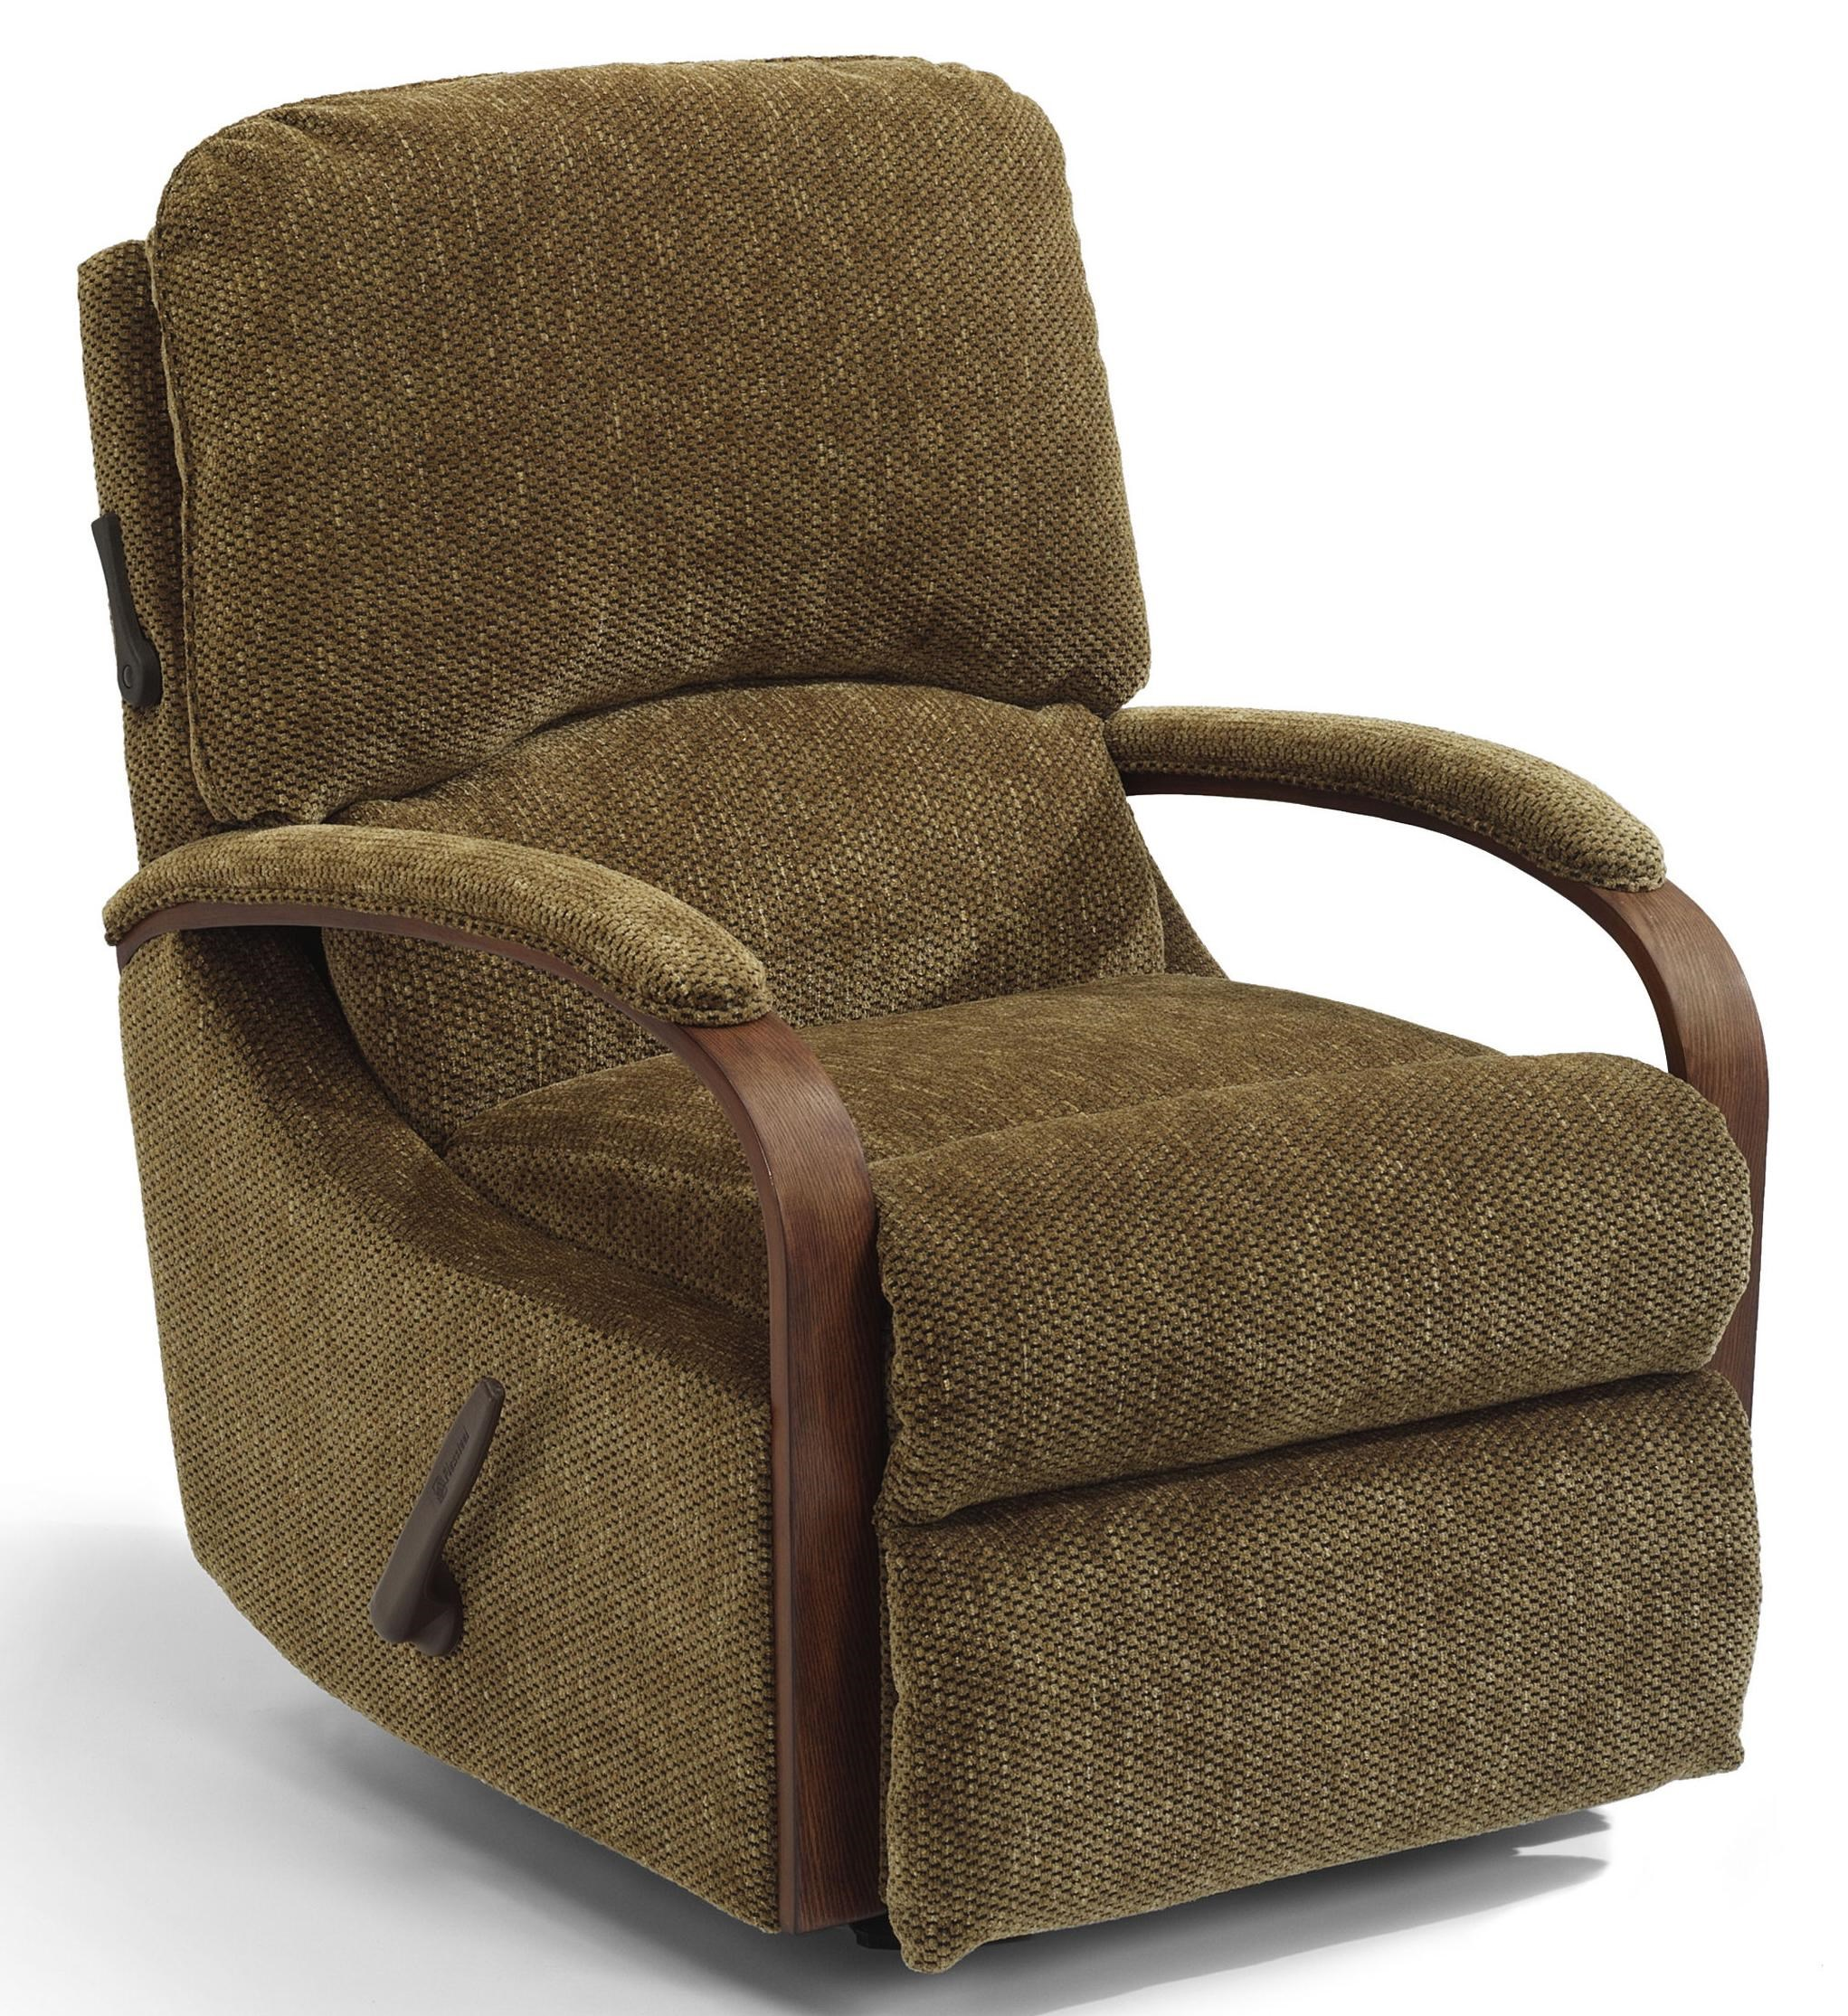 Exposed Wood Swivel Glider Recliner